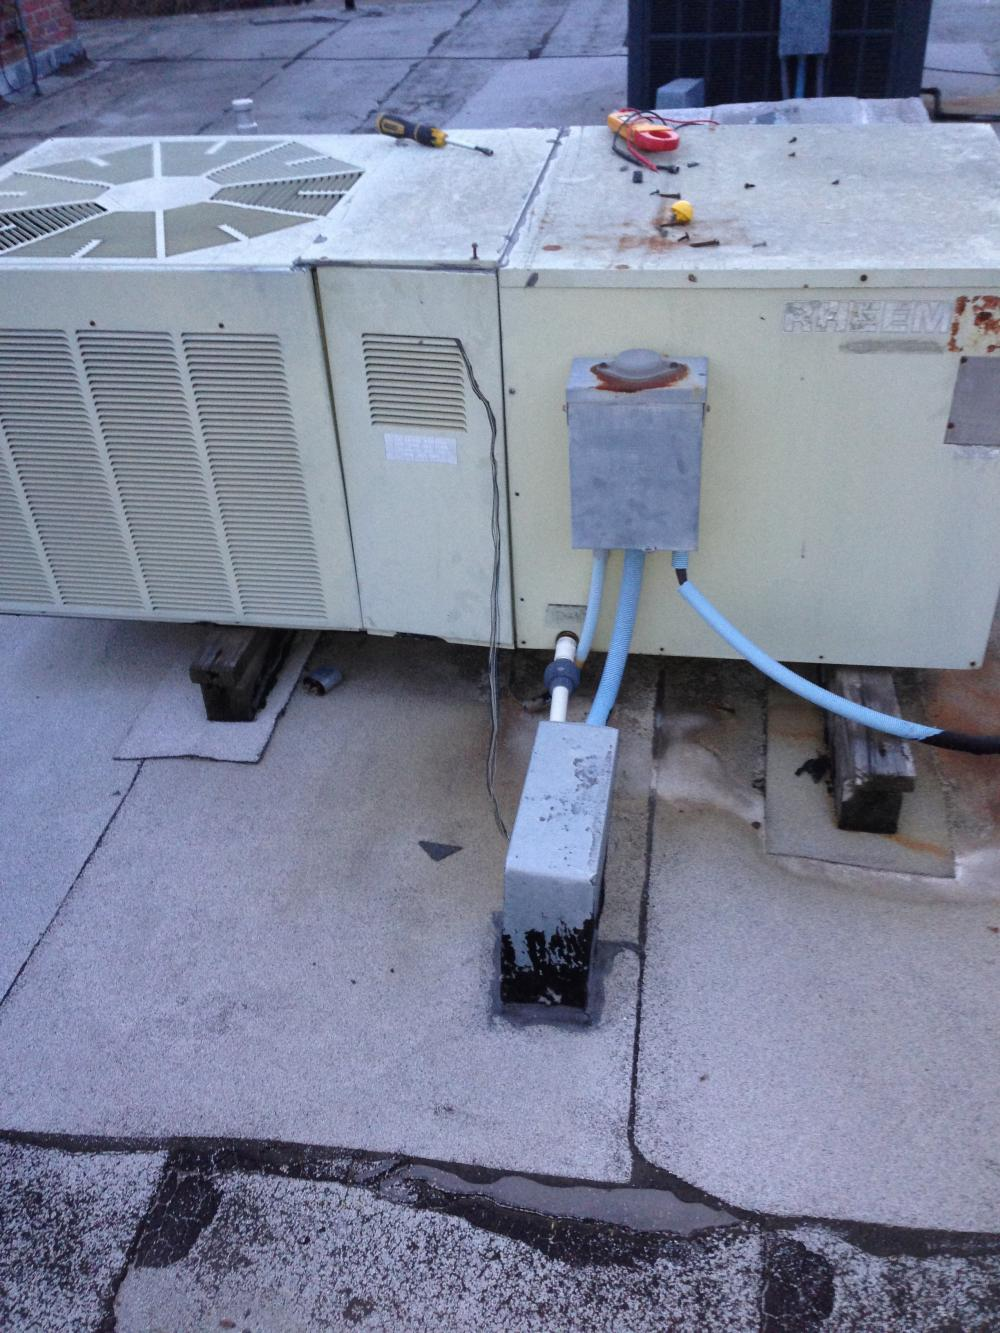 Old Rheem package unit - need model number on